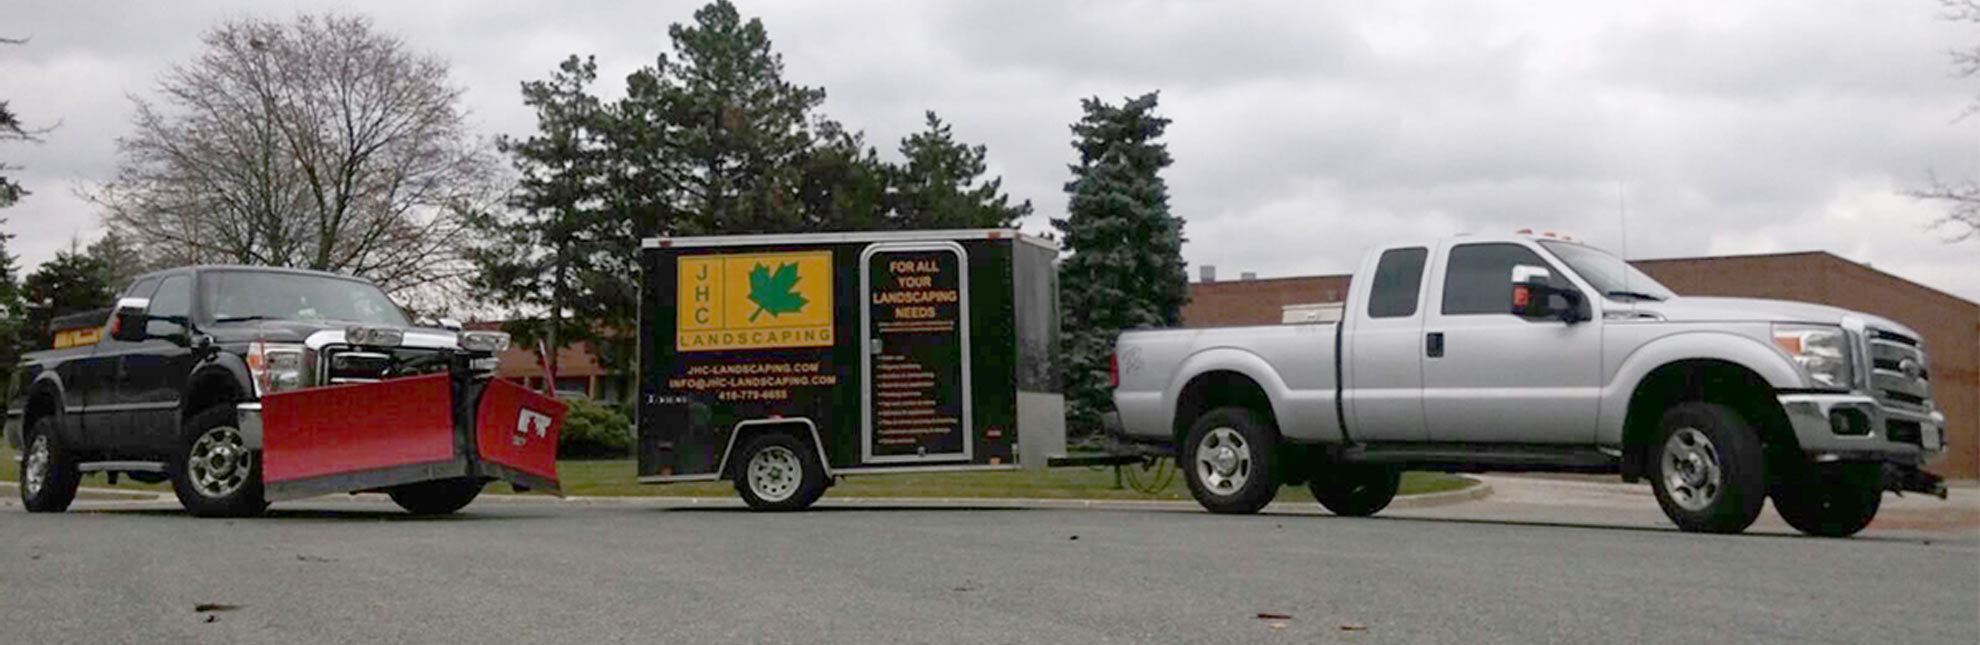 jhc landscaping trailer